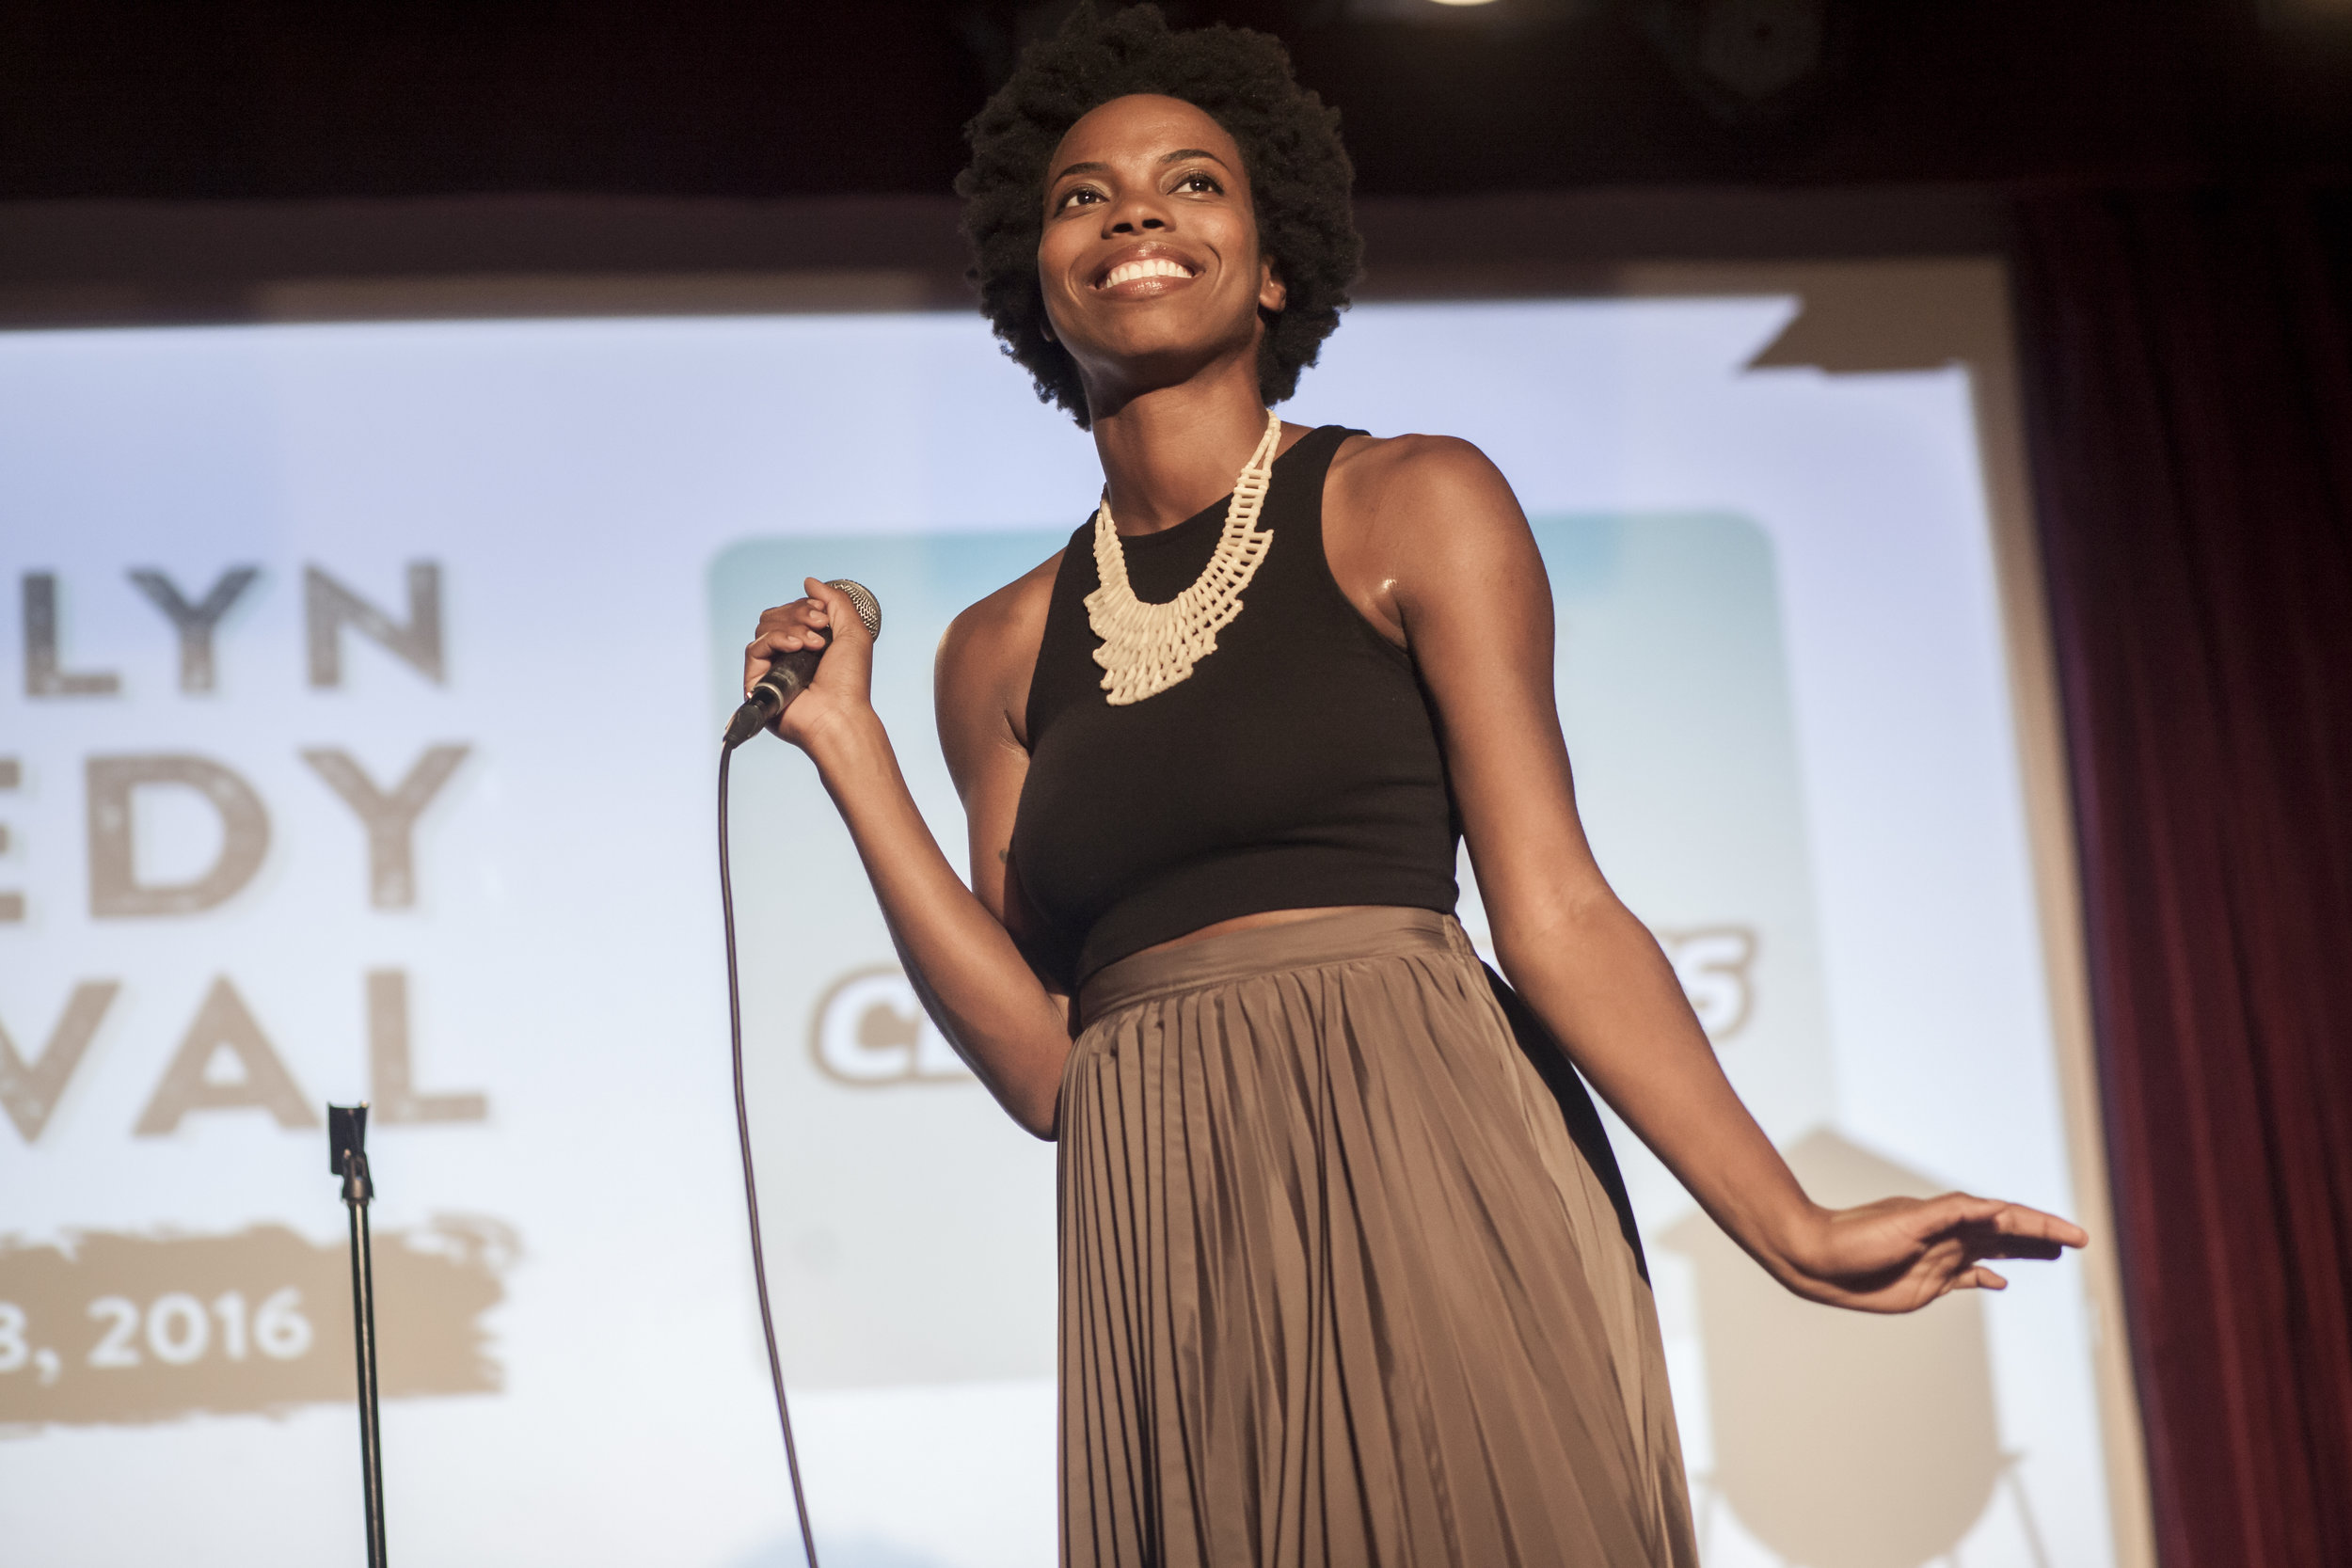 Sasheer Zamata @ The Bell House 2016